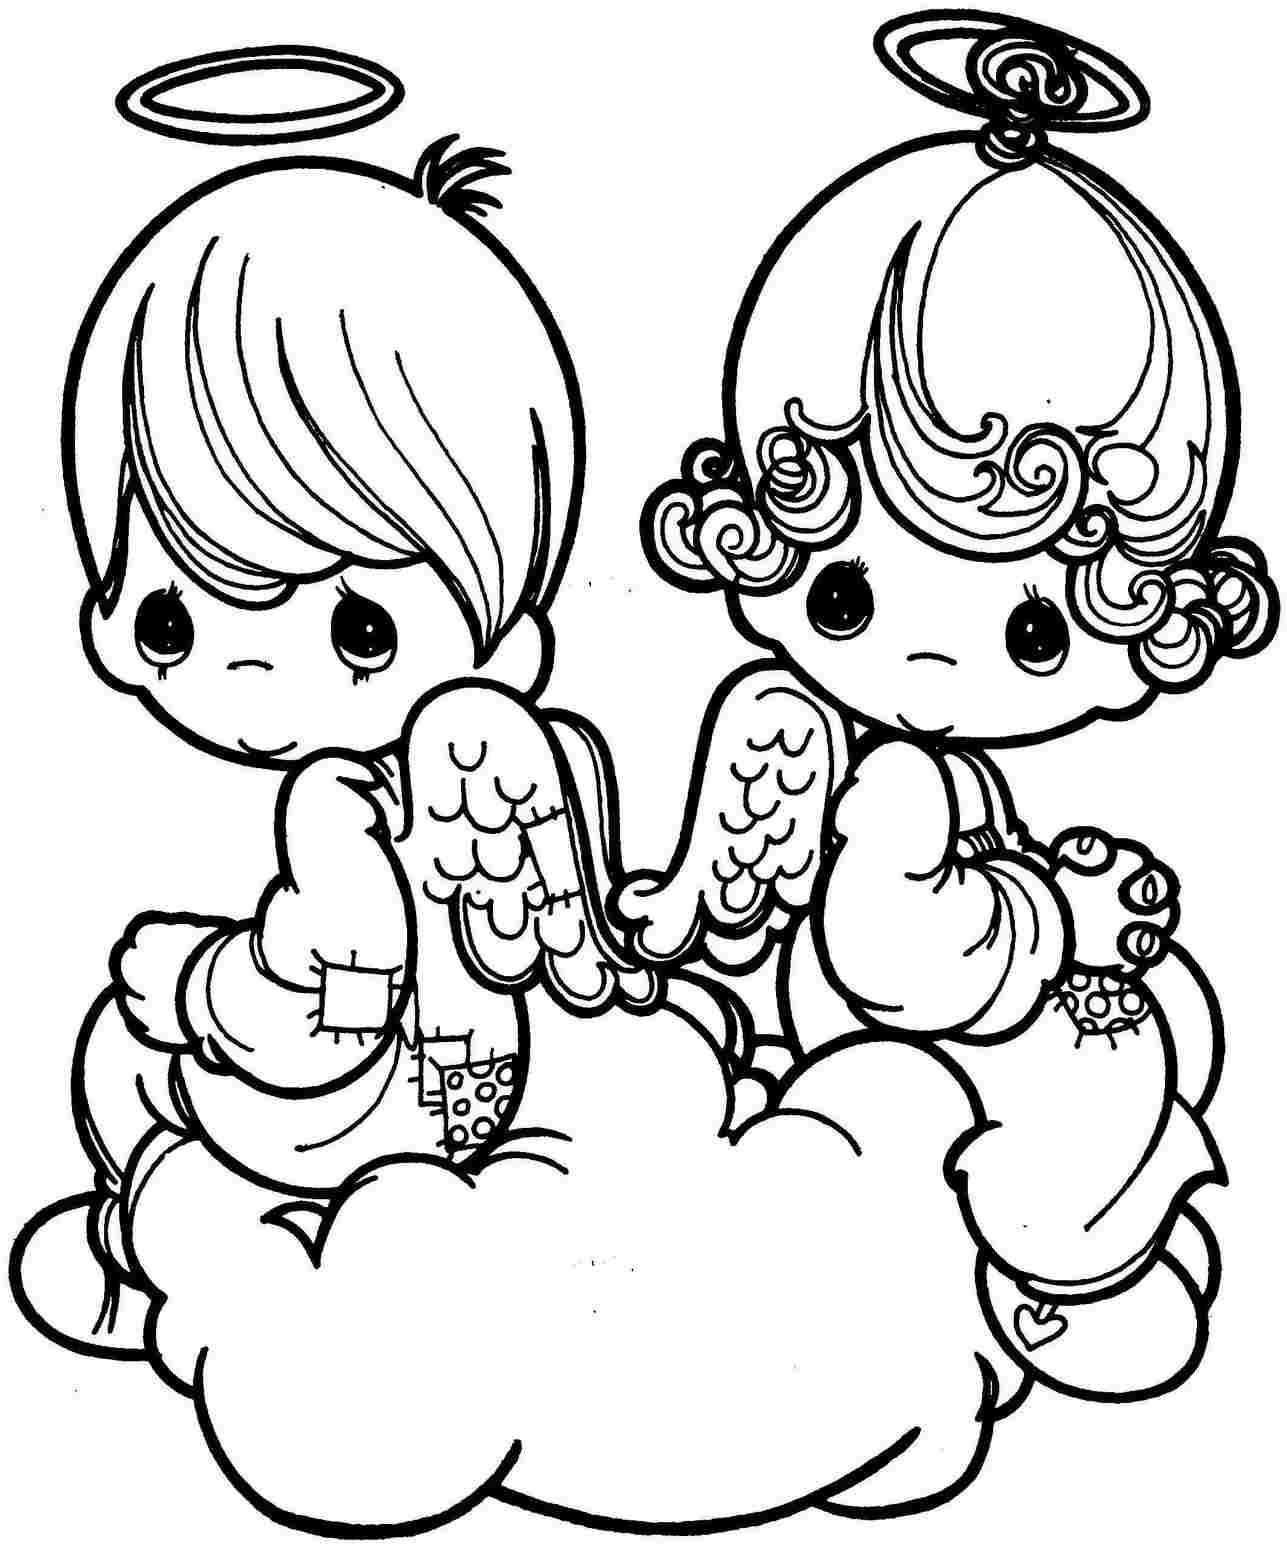 cupid coloring pages cupid line drawing clipart best cupid coloring pages